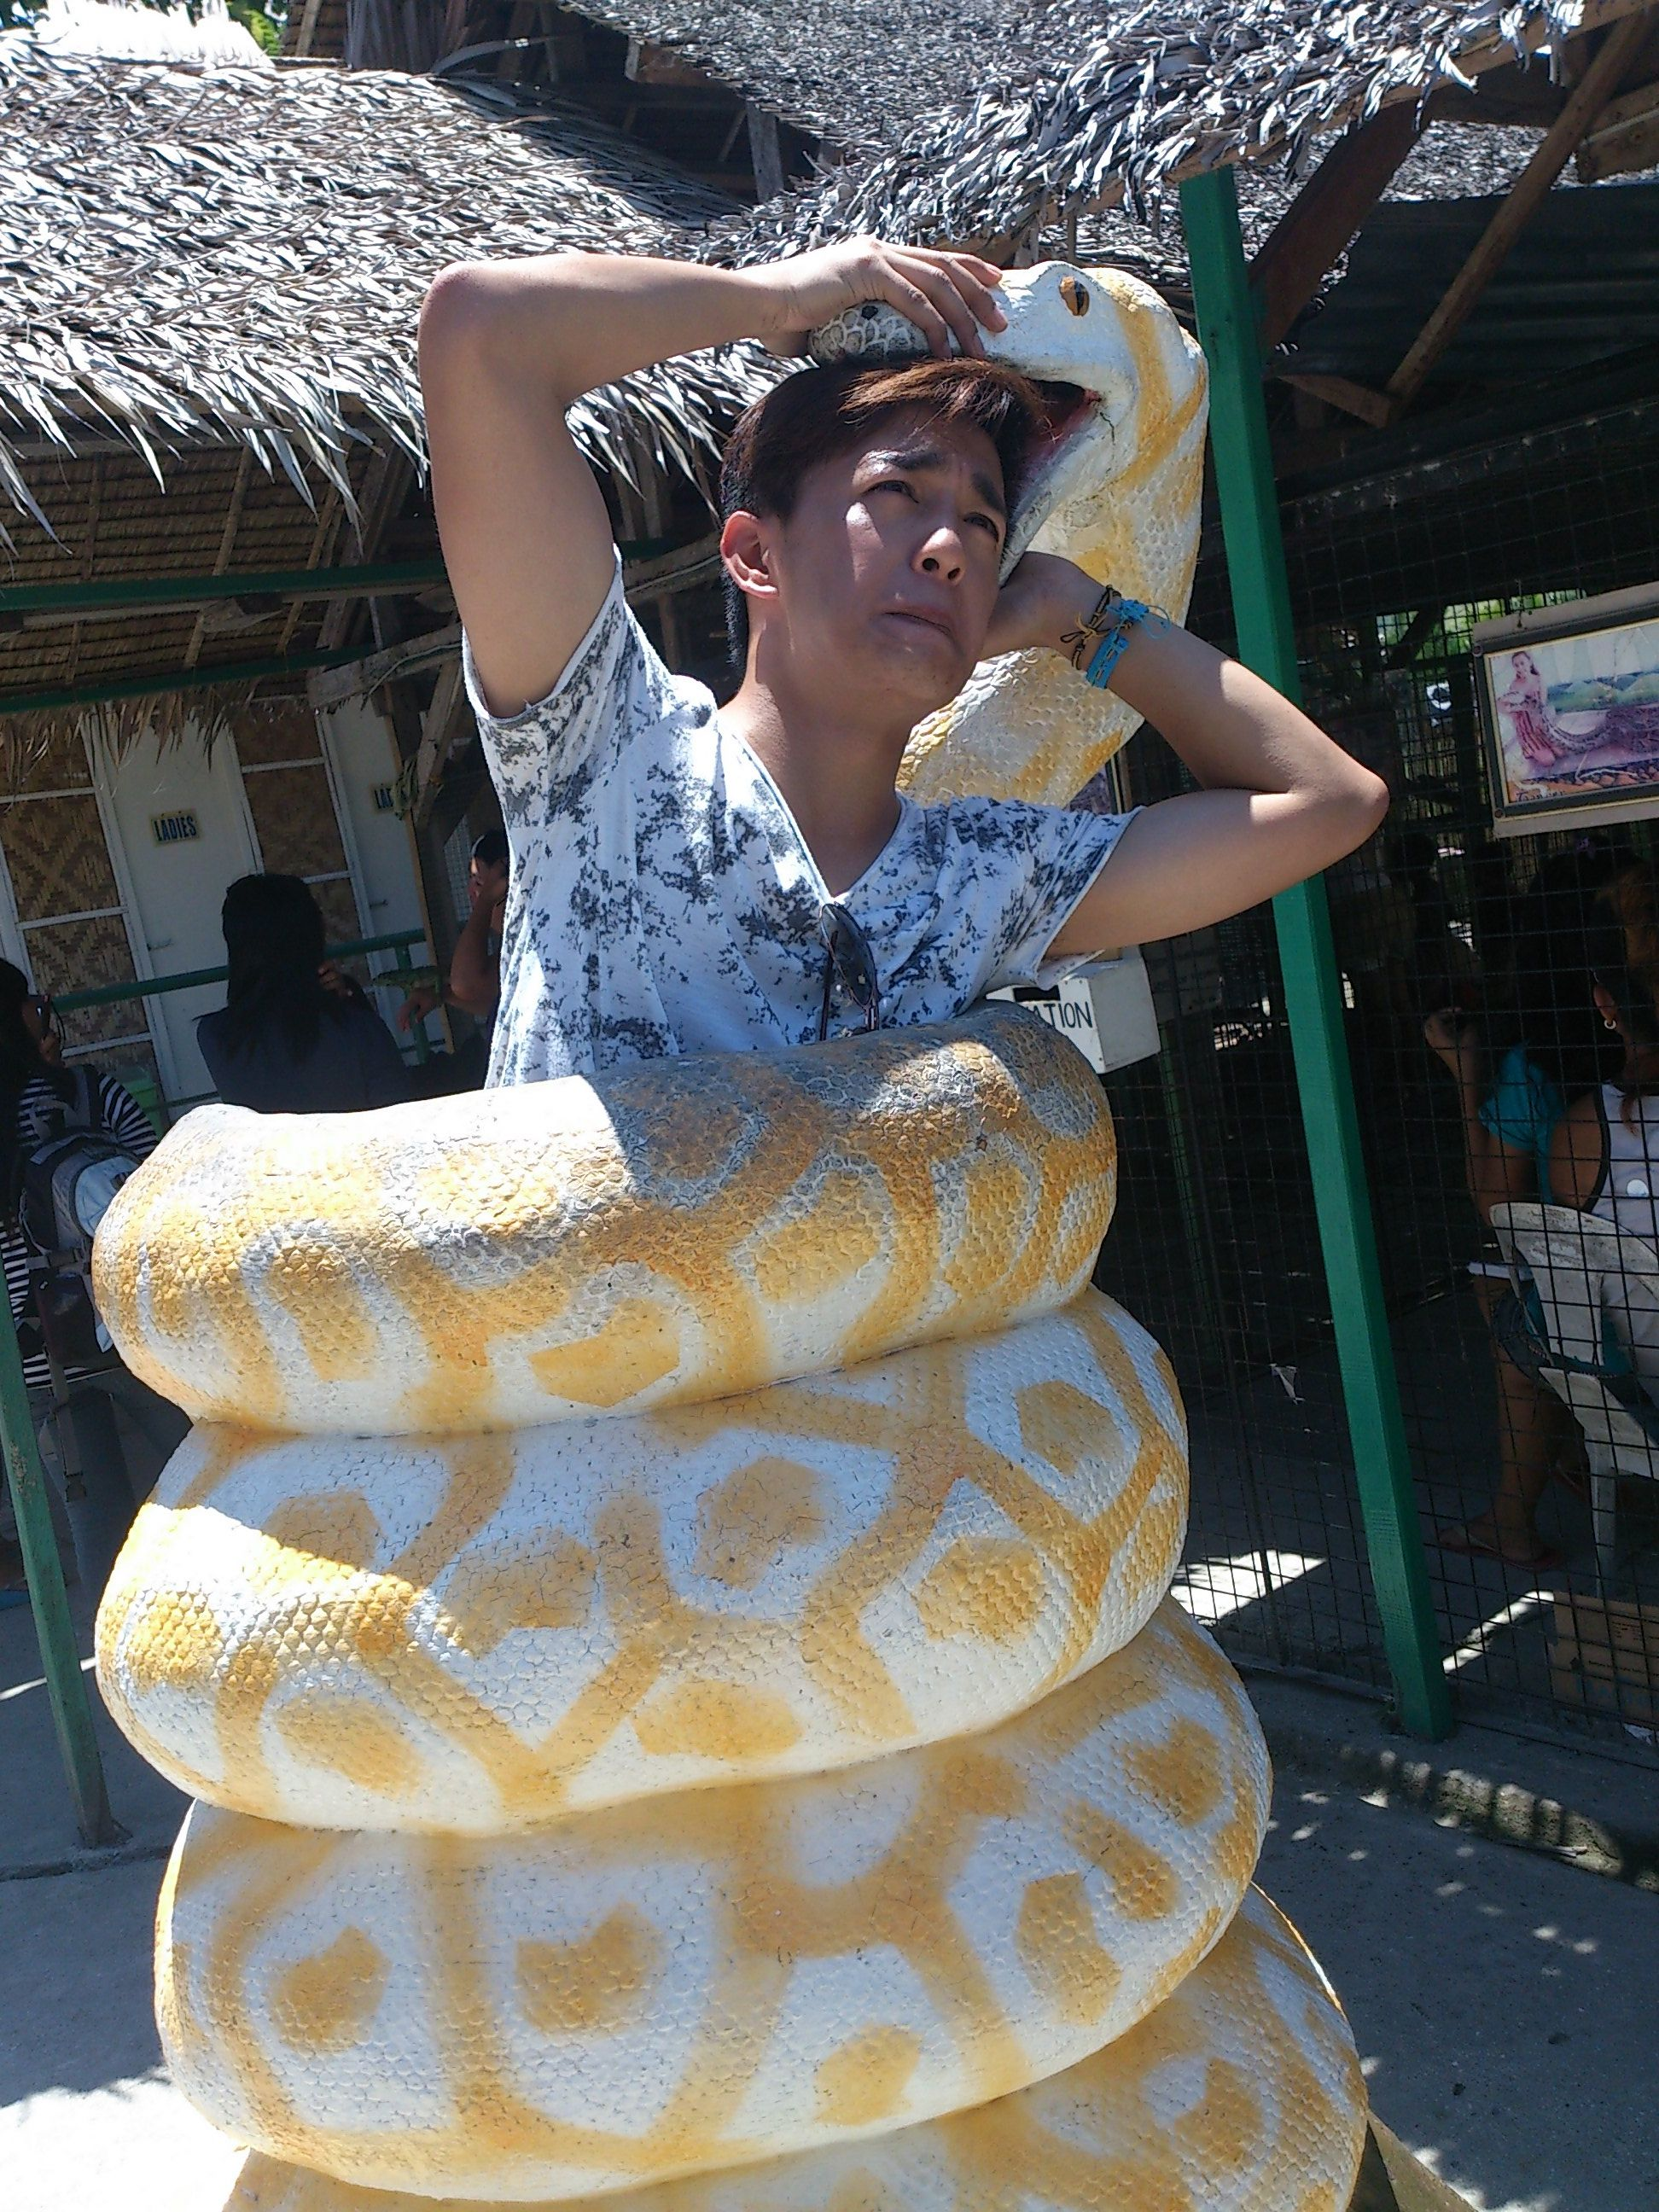 A Fake Snake Trying to Swallow me... hahaha